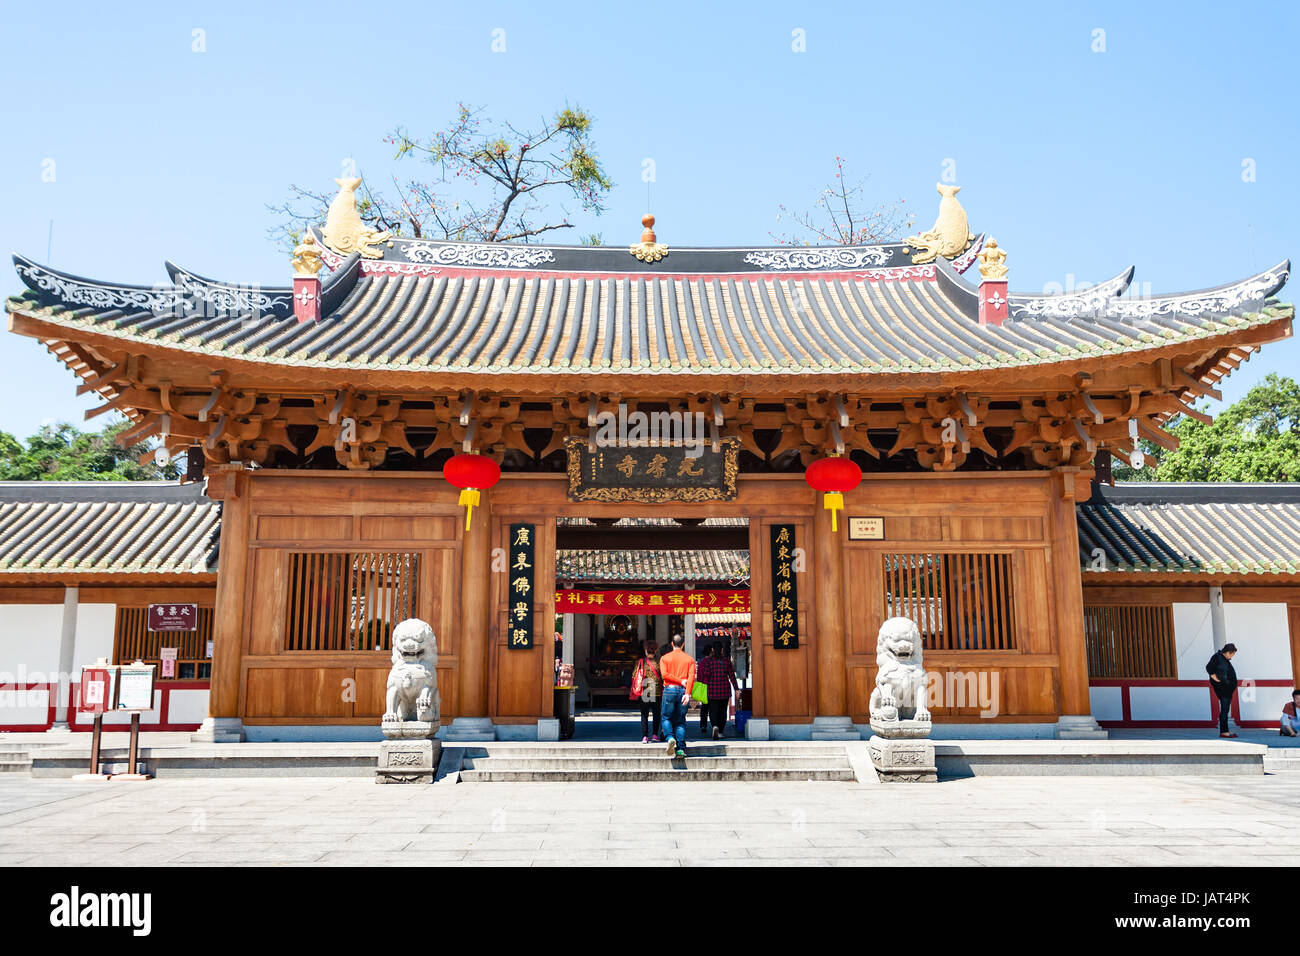 GUANGZHOU, CHINA - APRIL 1, 2017: visitors near doors of Guangxiao Temple (Bright Obedience, Bright Filial Piety - Stock Image